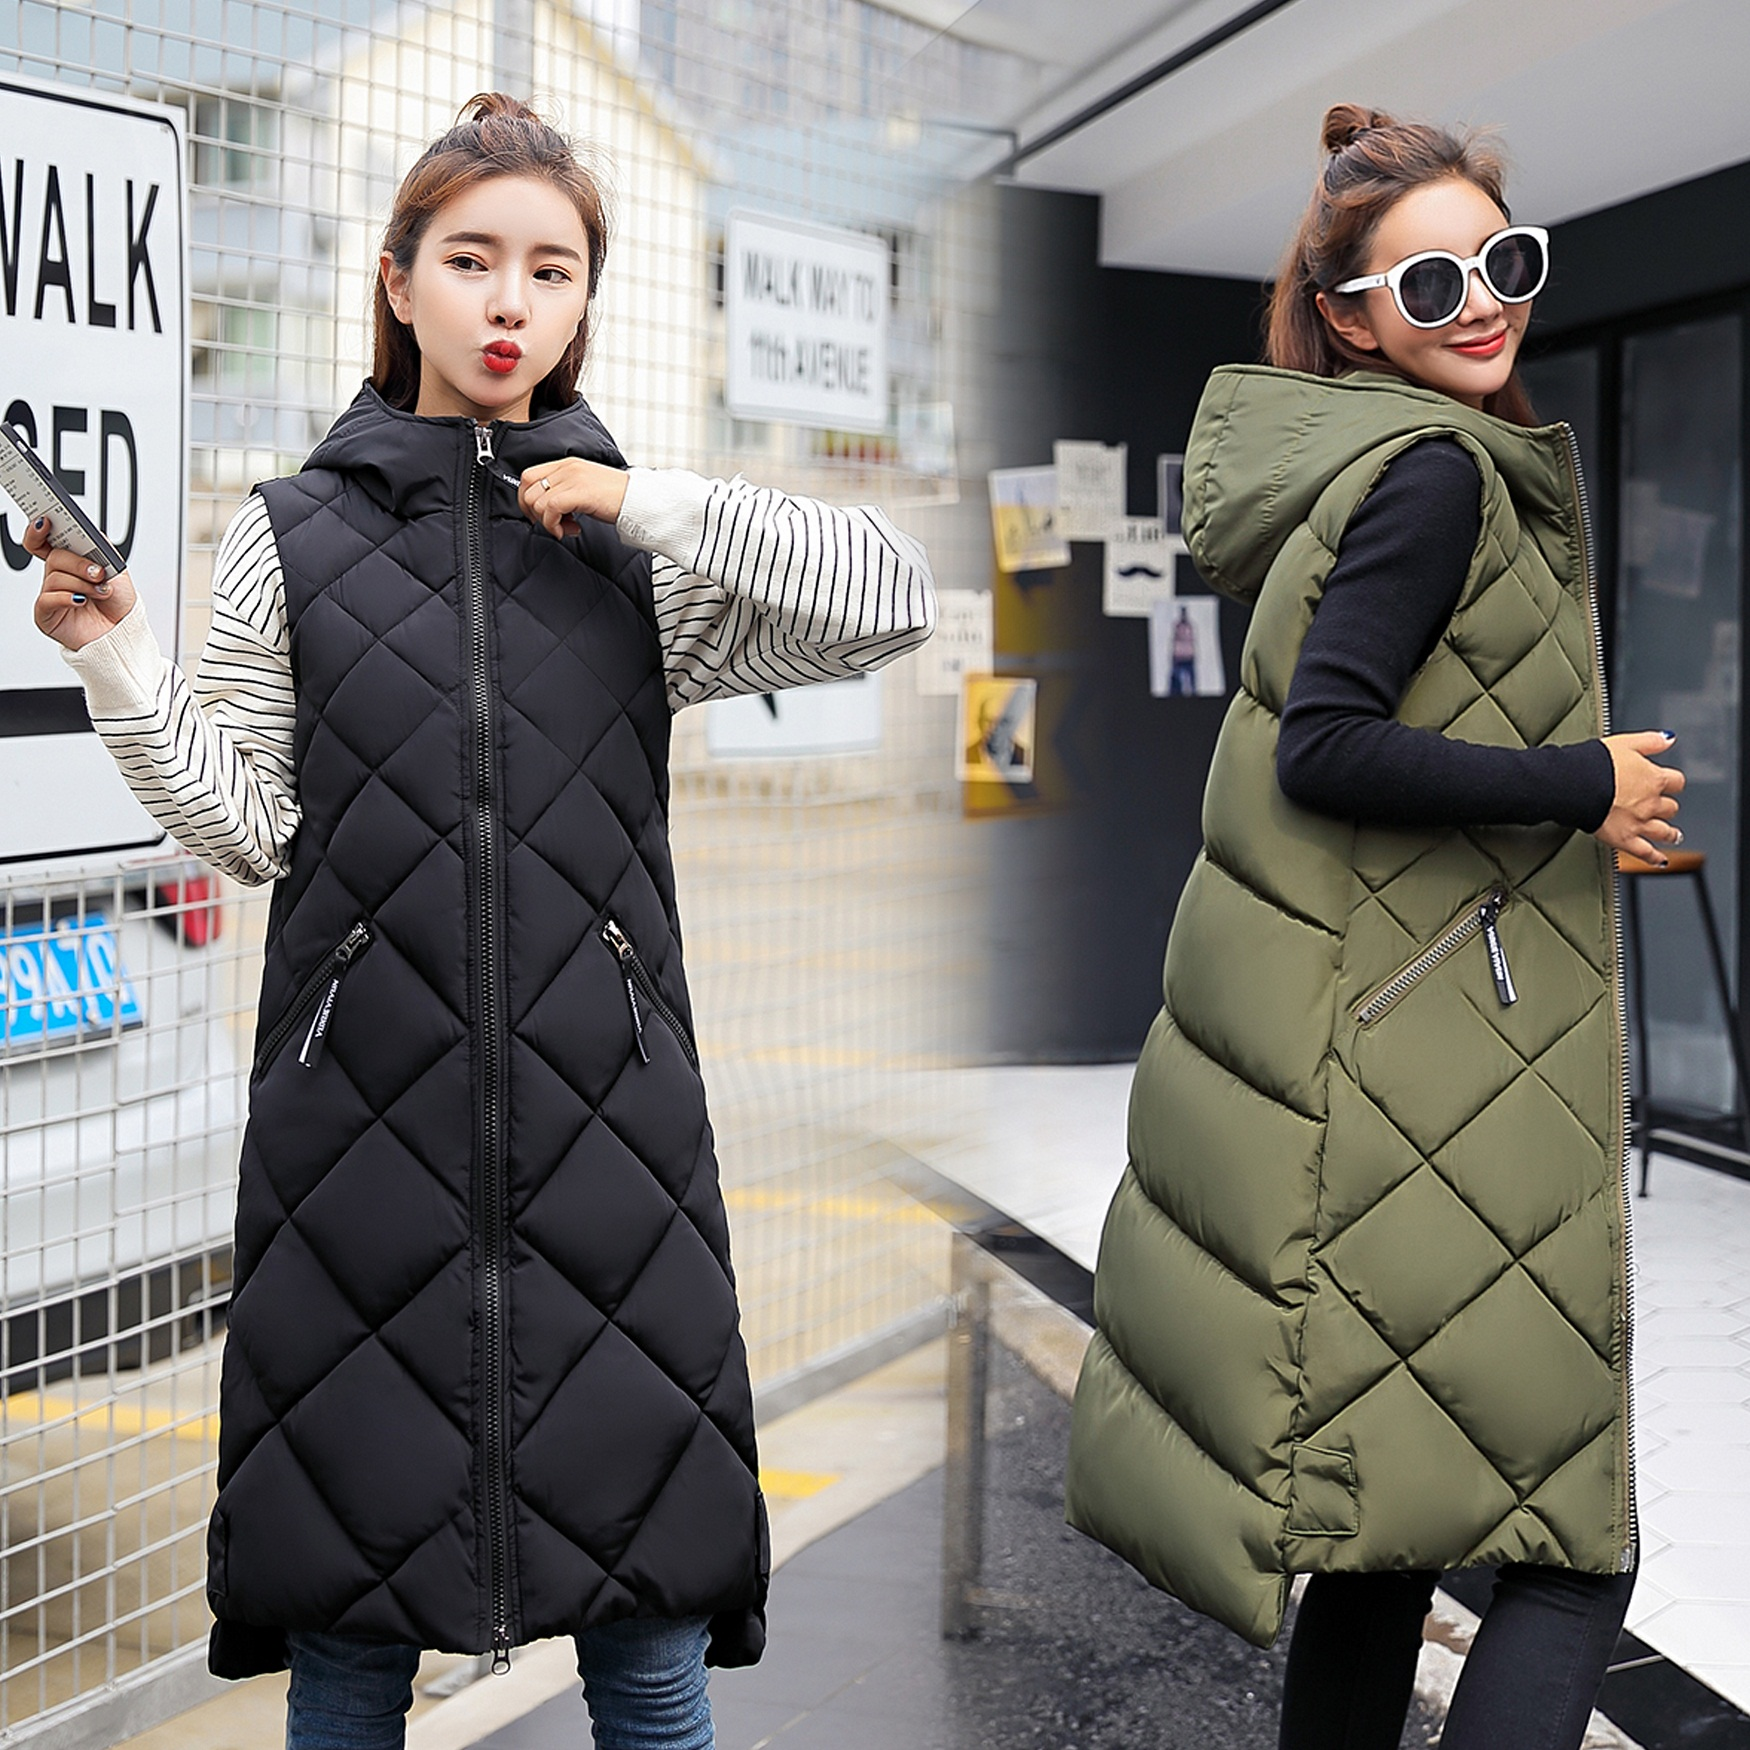 Jacket Coats Winter Women's Fashion Summer Female Casual Cheap L195 Bisic Warm Hot-Selling